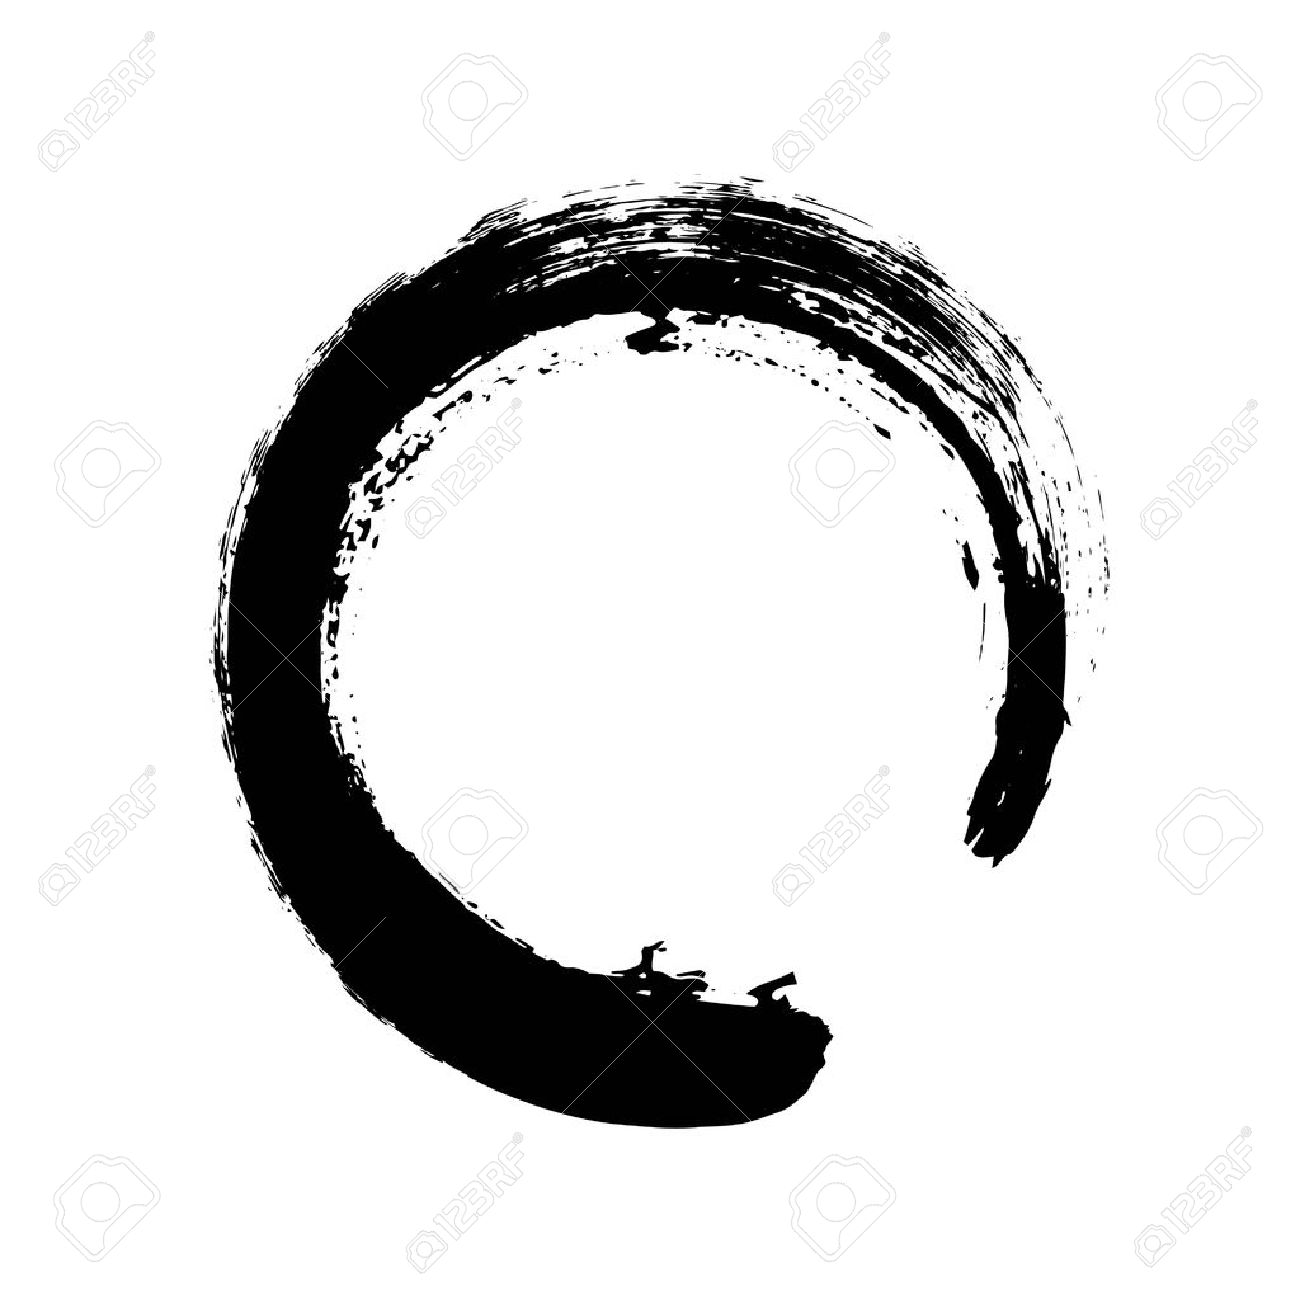 Hand drawn circle shape. Circular label, design element, frame. Brush abstract wave. Black enso zen symbol. Vector illustration. Place for text. - 64695767